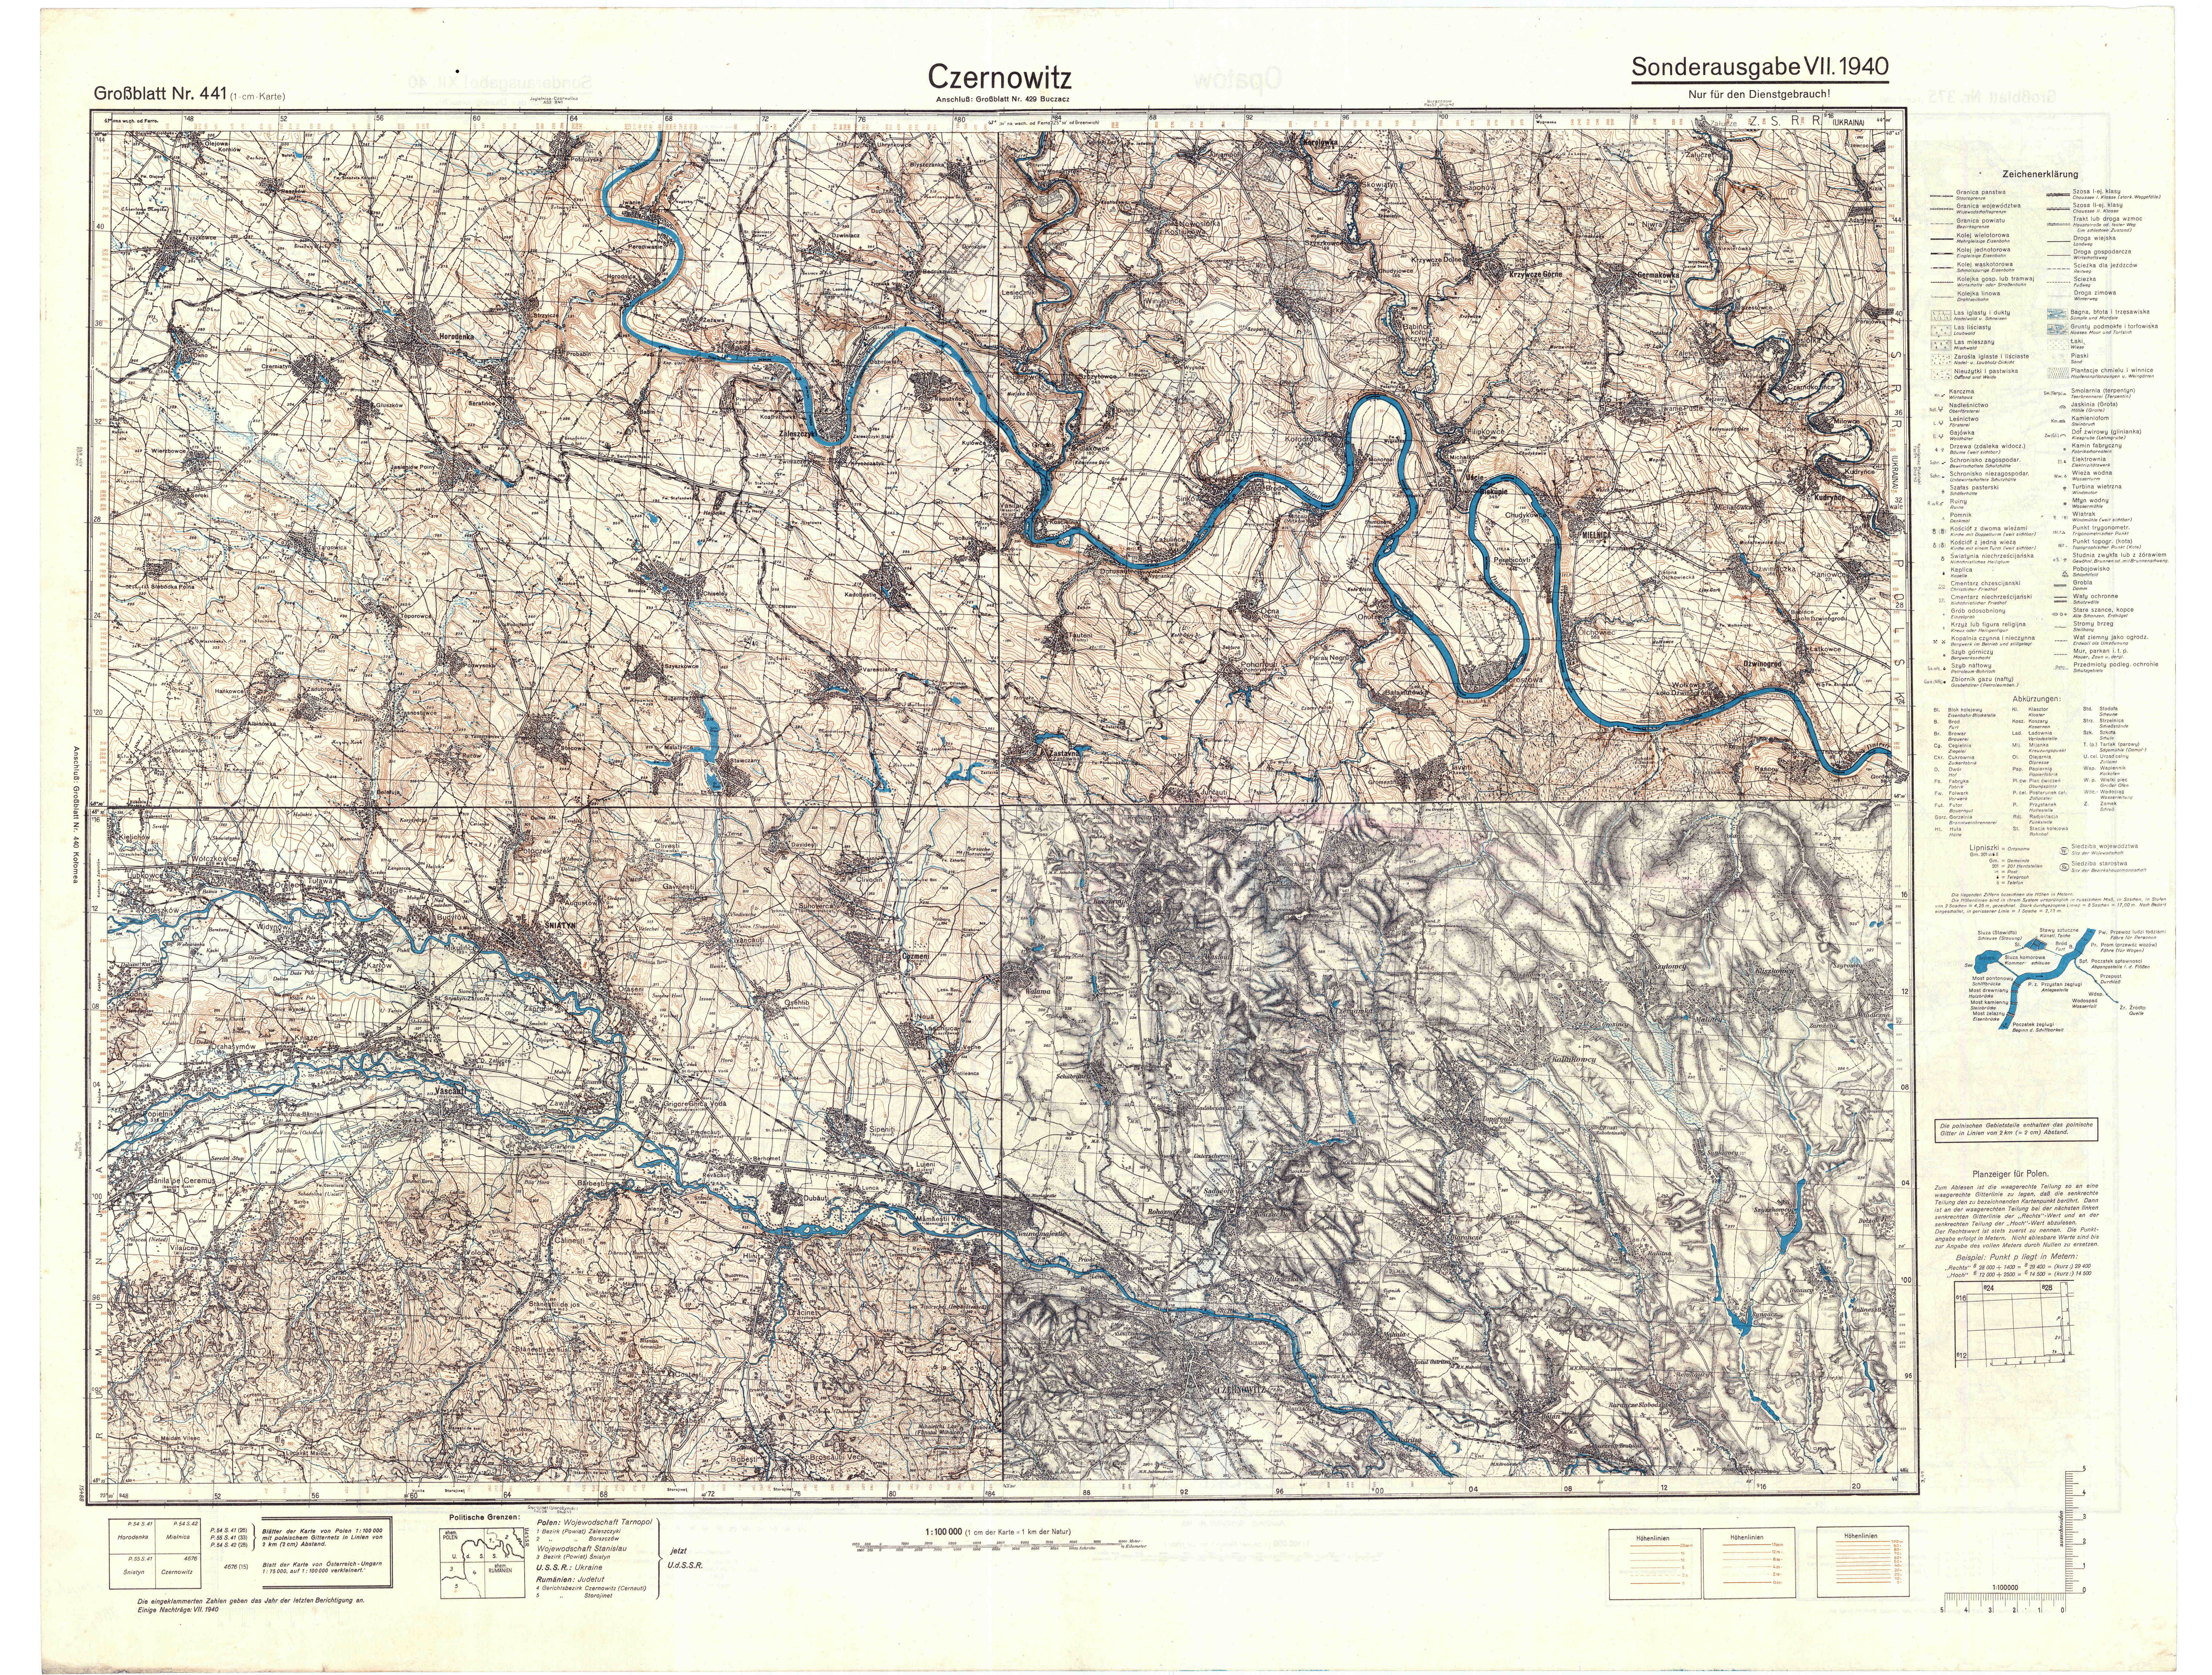 Maps - Germany map 1940